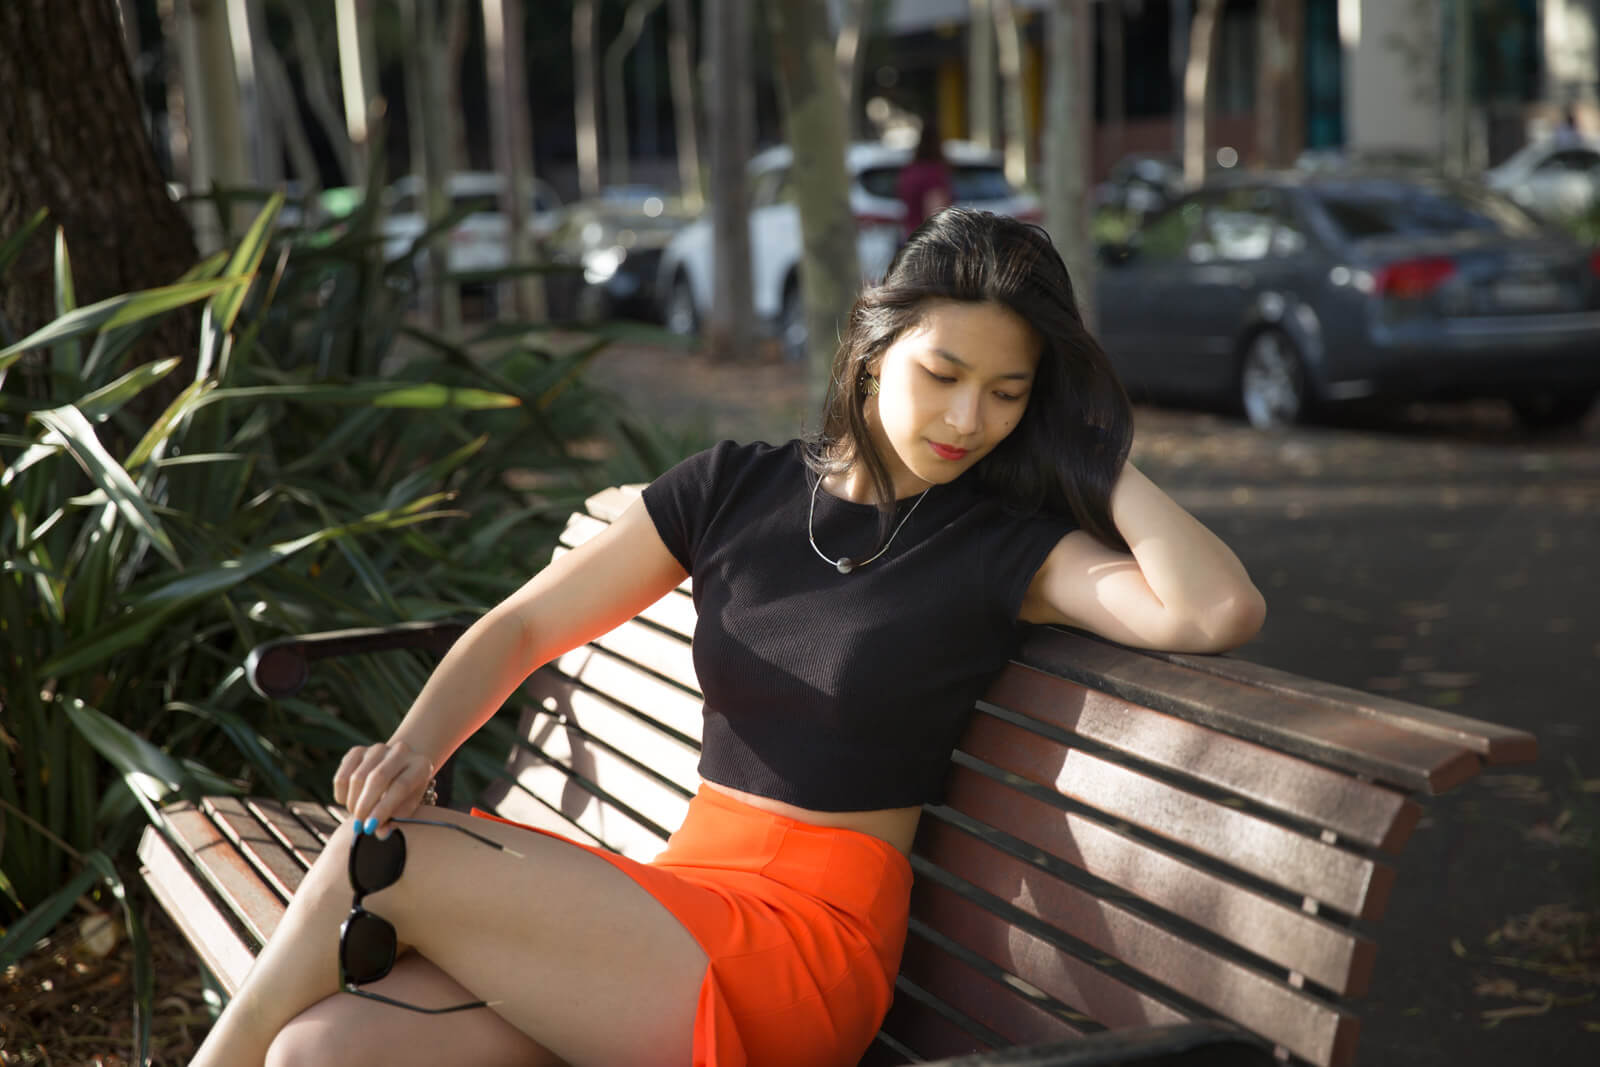 A woman with short dark hair wearing a black short sleeved t-shirt and a bright orange skirt. She is sitting on a wooden bench with one arm resting on the top of the bench, and the other hand holding a pair of black sunglasses. Her gaze is focused downwards.